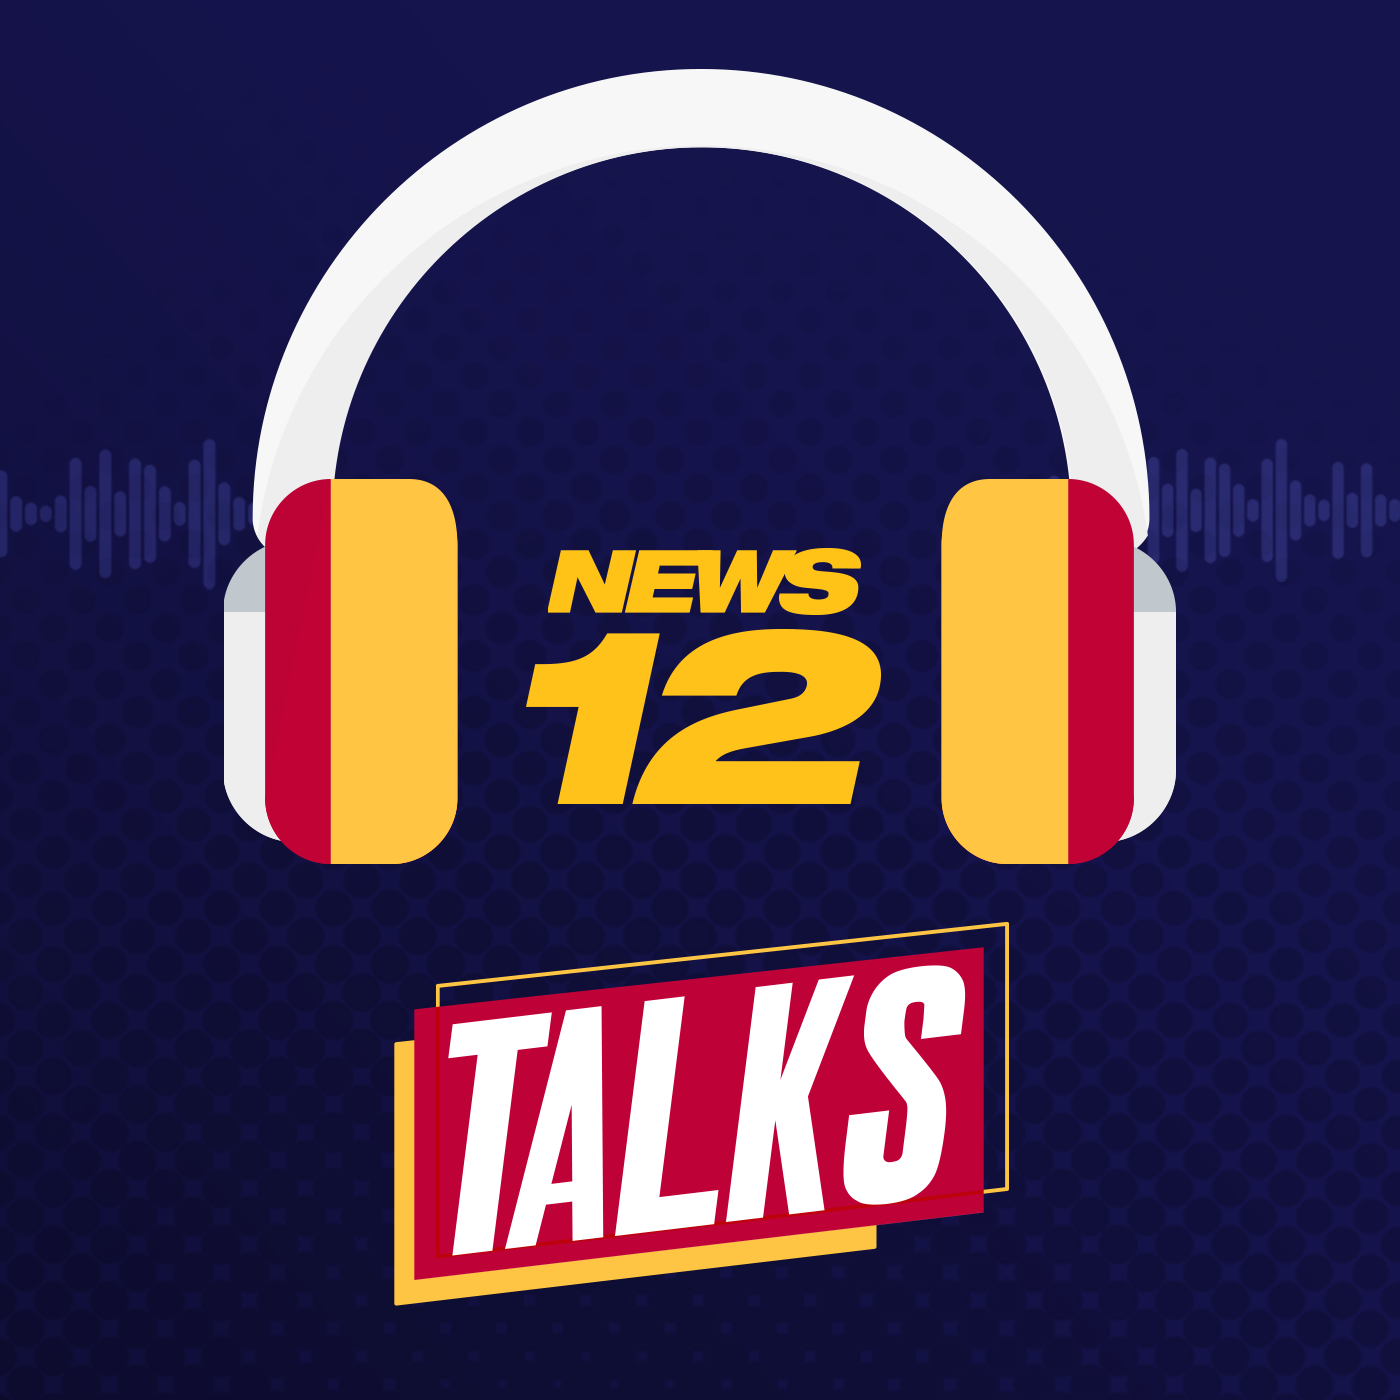 News 12 Talks Hudson Valley | Listen via Stitcher for Podcasts